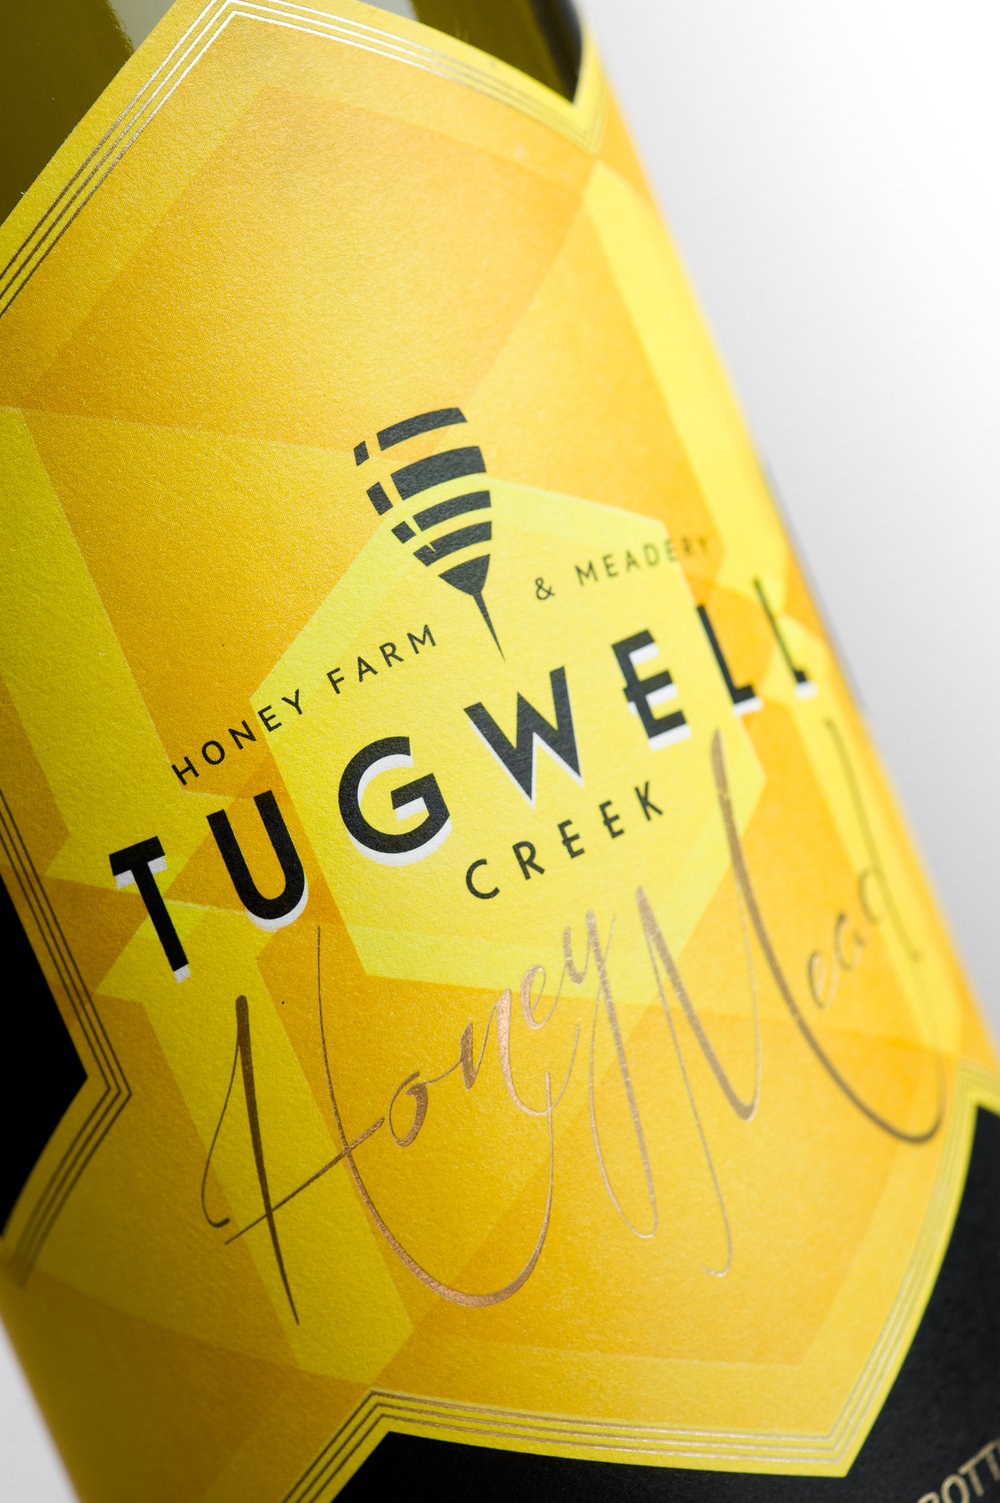 Hired Guns Creative was brought in to create a new brand and label design for Tugwell Creek Honey Farm & Meadery, the oldest honey farm and meadery on Vancouver Island. Dissatisfied with their old labels, the team at Tugwell Creek wanted a design that more accurately reflected their operation, philosophy, and products.  The end result is a clever, versatile identity that positions them very firmly as a wine competitor, yet distinctly apart from wineries; and a bright, vivid label that has substantially increased their shelf presence in wine shops.